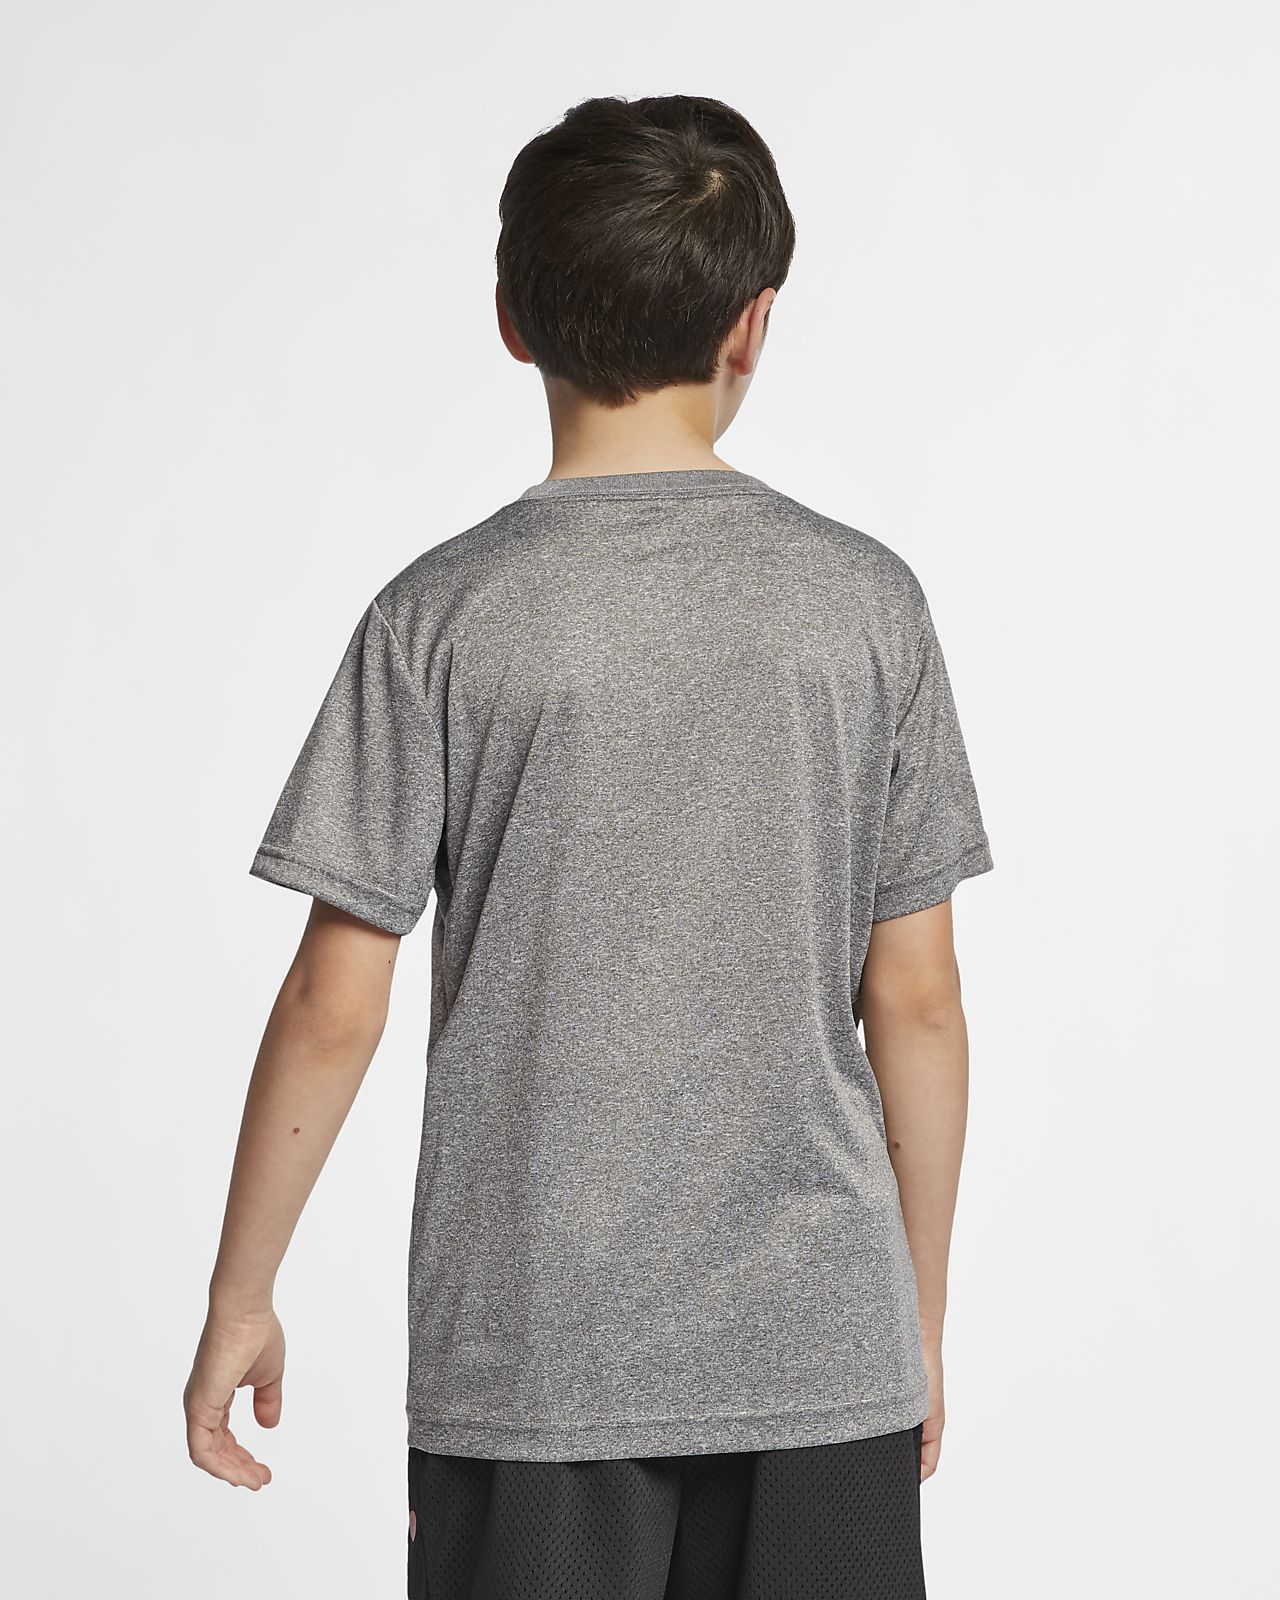 557aeface192 Jordan Dri-FIT Big Kids  (Boys ) T-Shirt. Nike.com